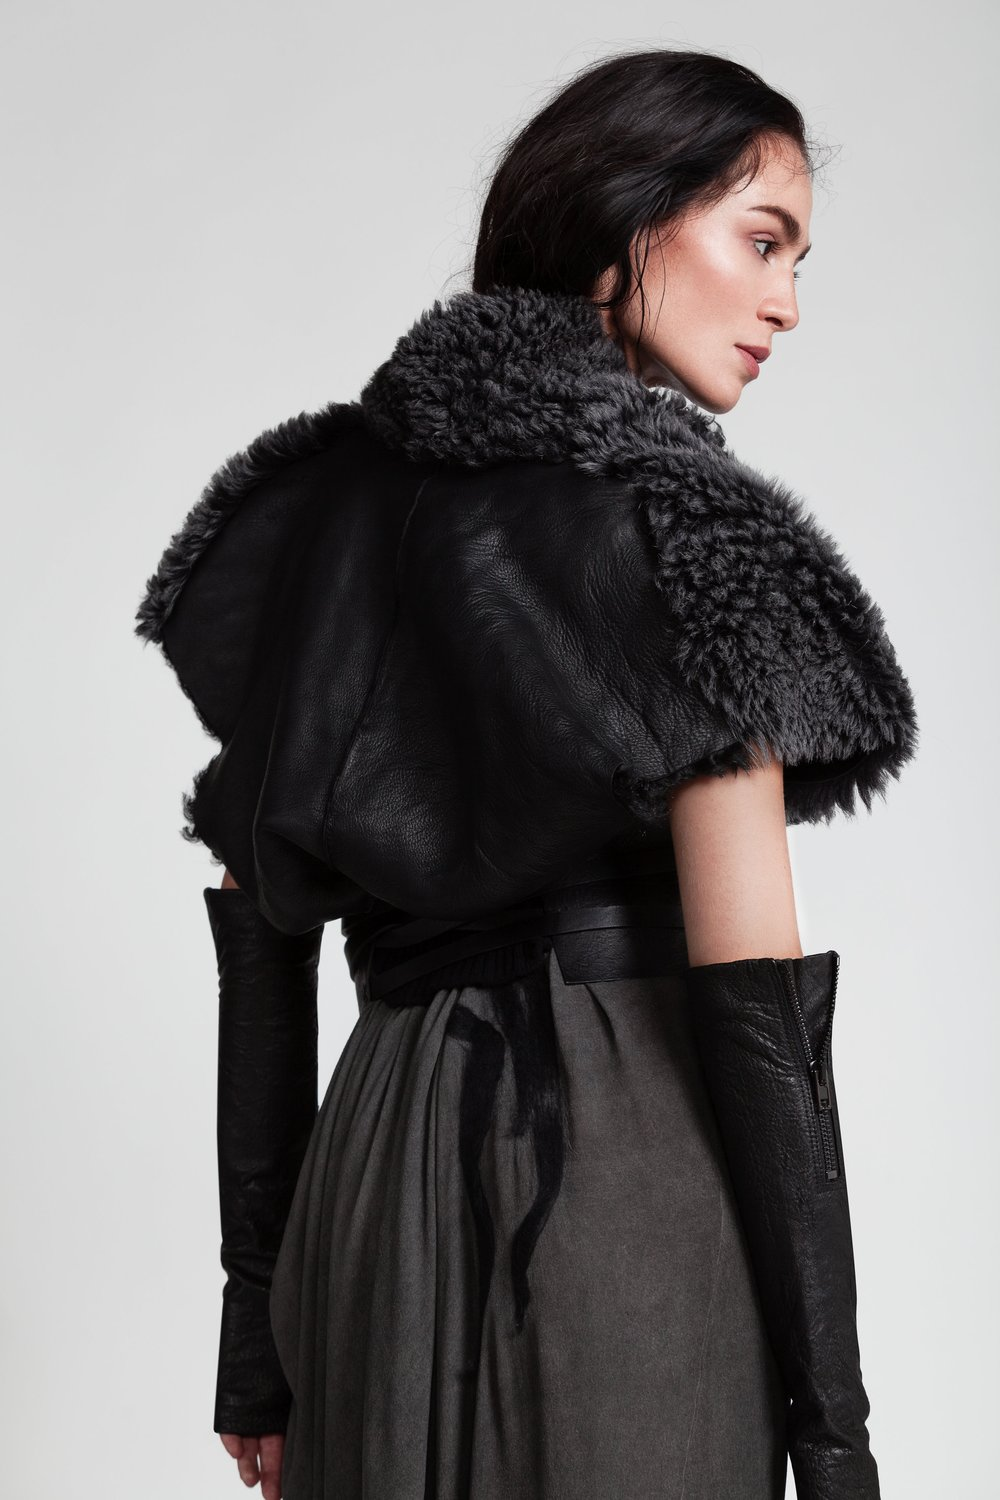 Fur-Coat and Dress by Lost&Found, Belt and Gloves by Isabel Benenato